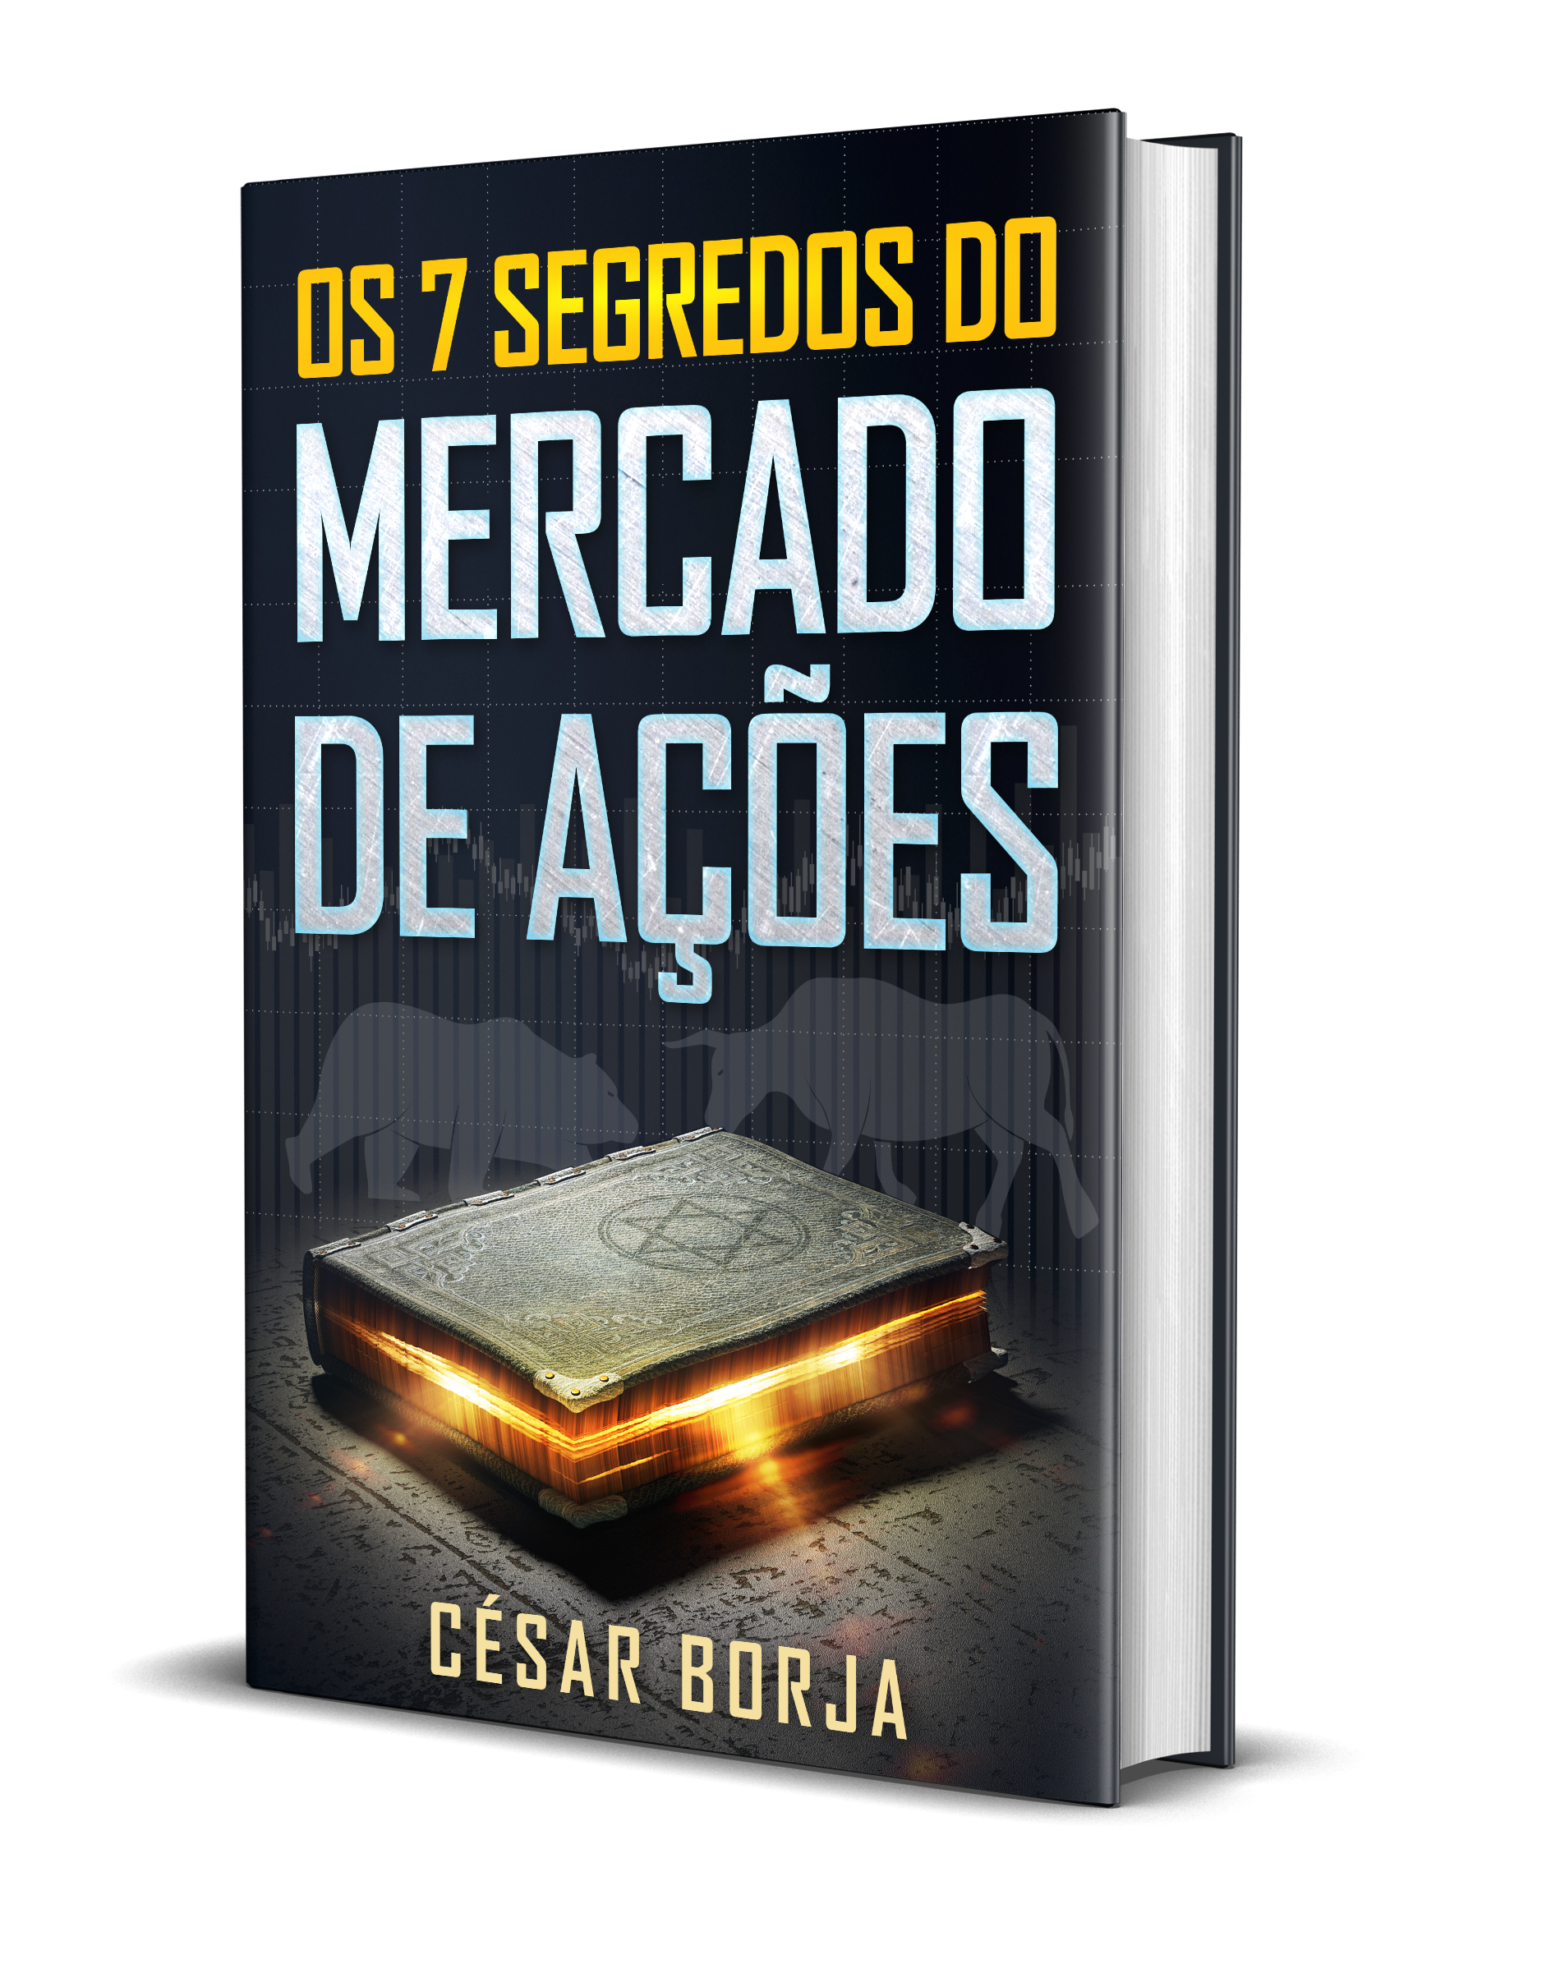 Os 7 segredos do mercado de acoes - ebook gratuito sobre investimento em acoes com base na analise fundamental